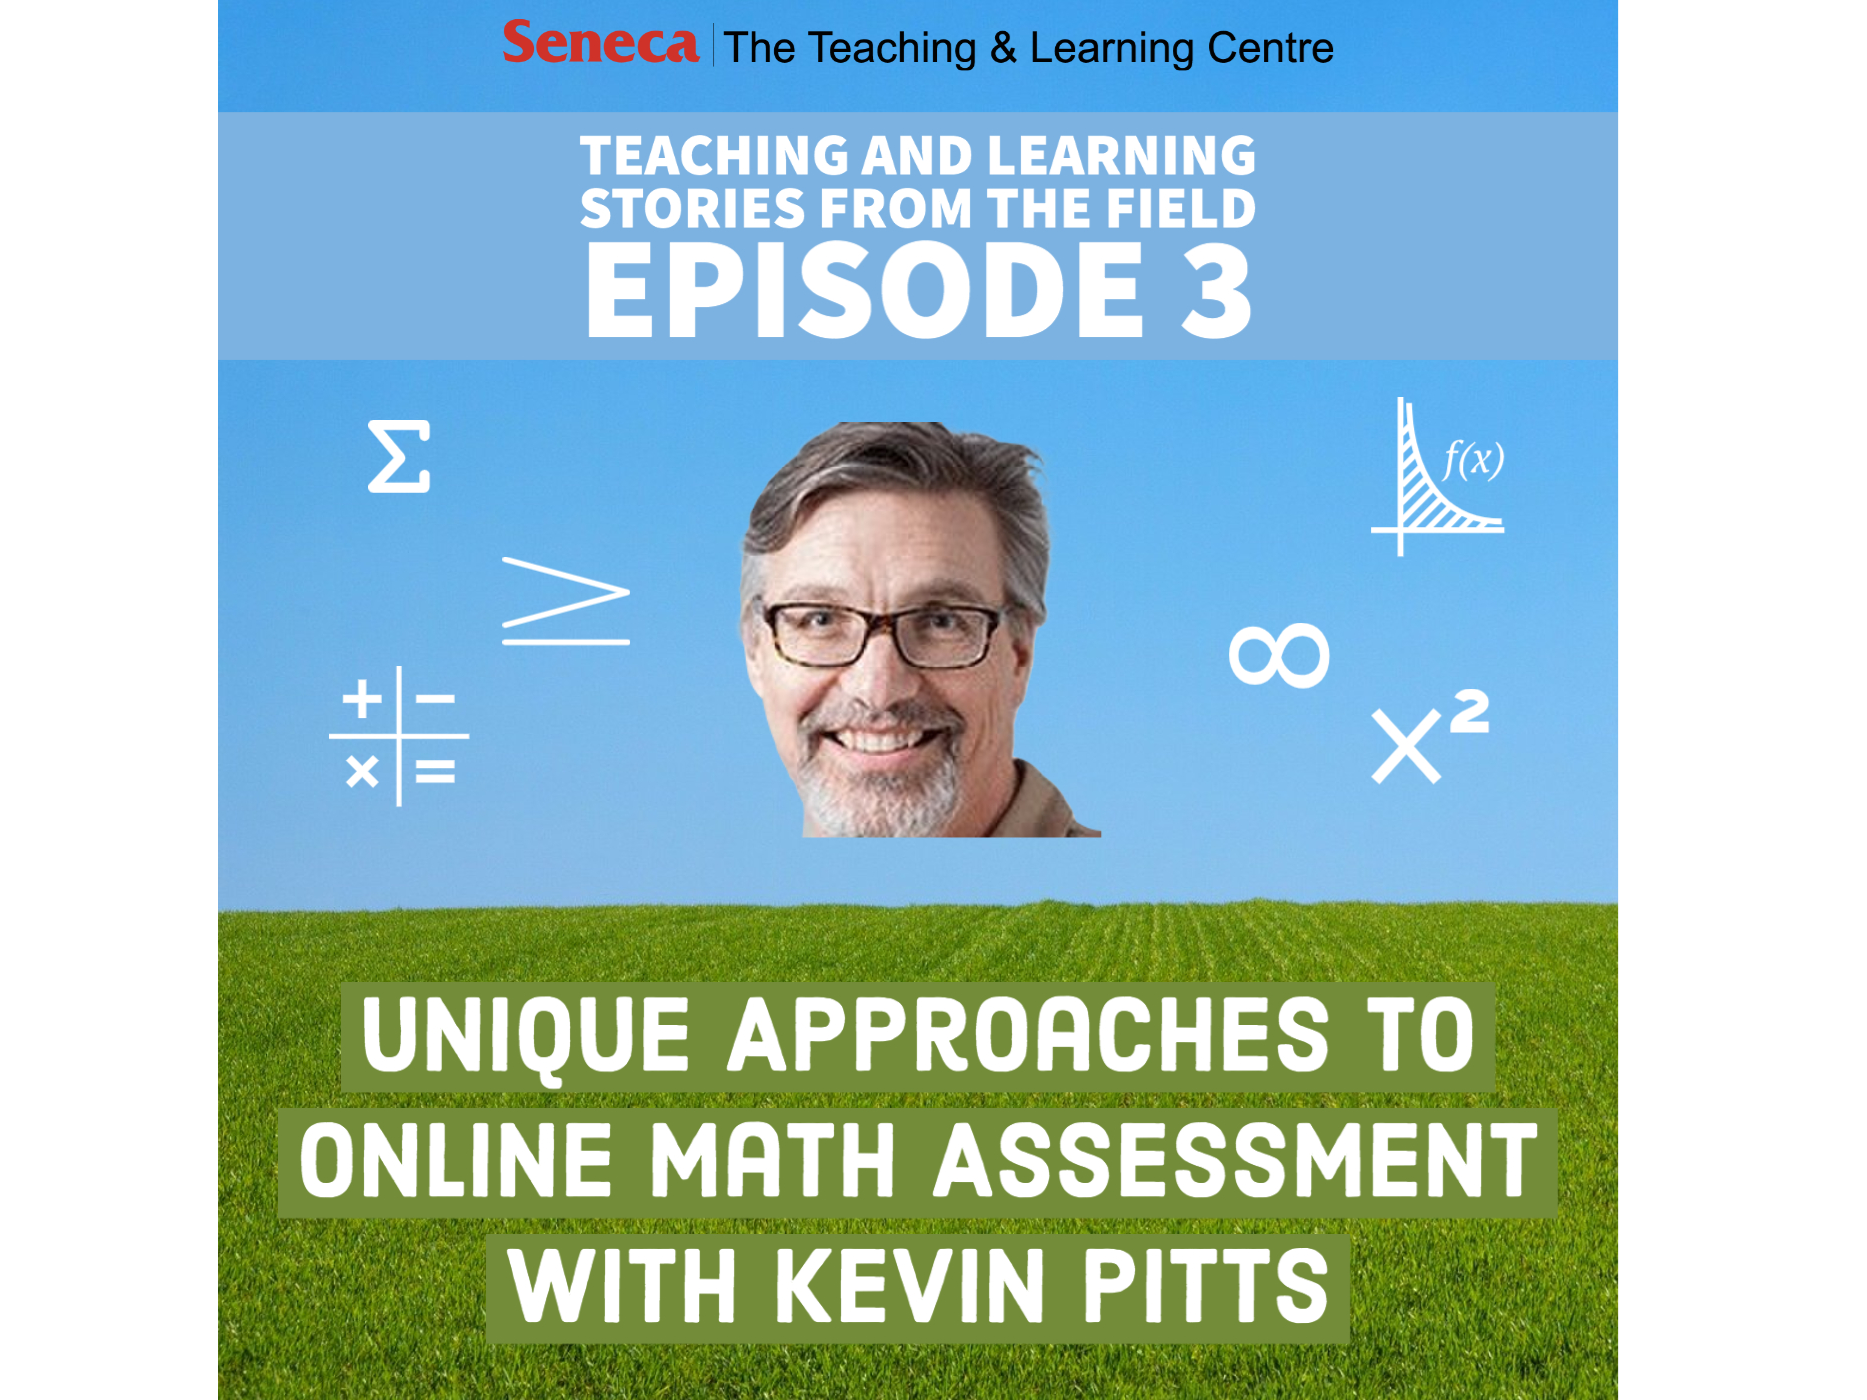 Unique Approaches to Online Math Assessment